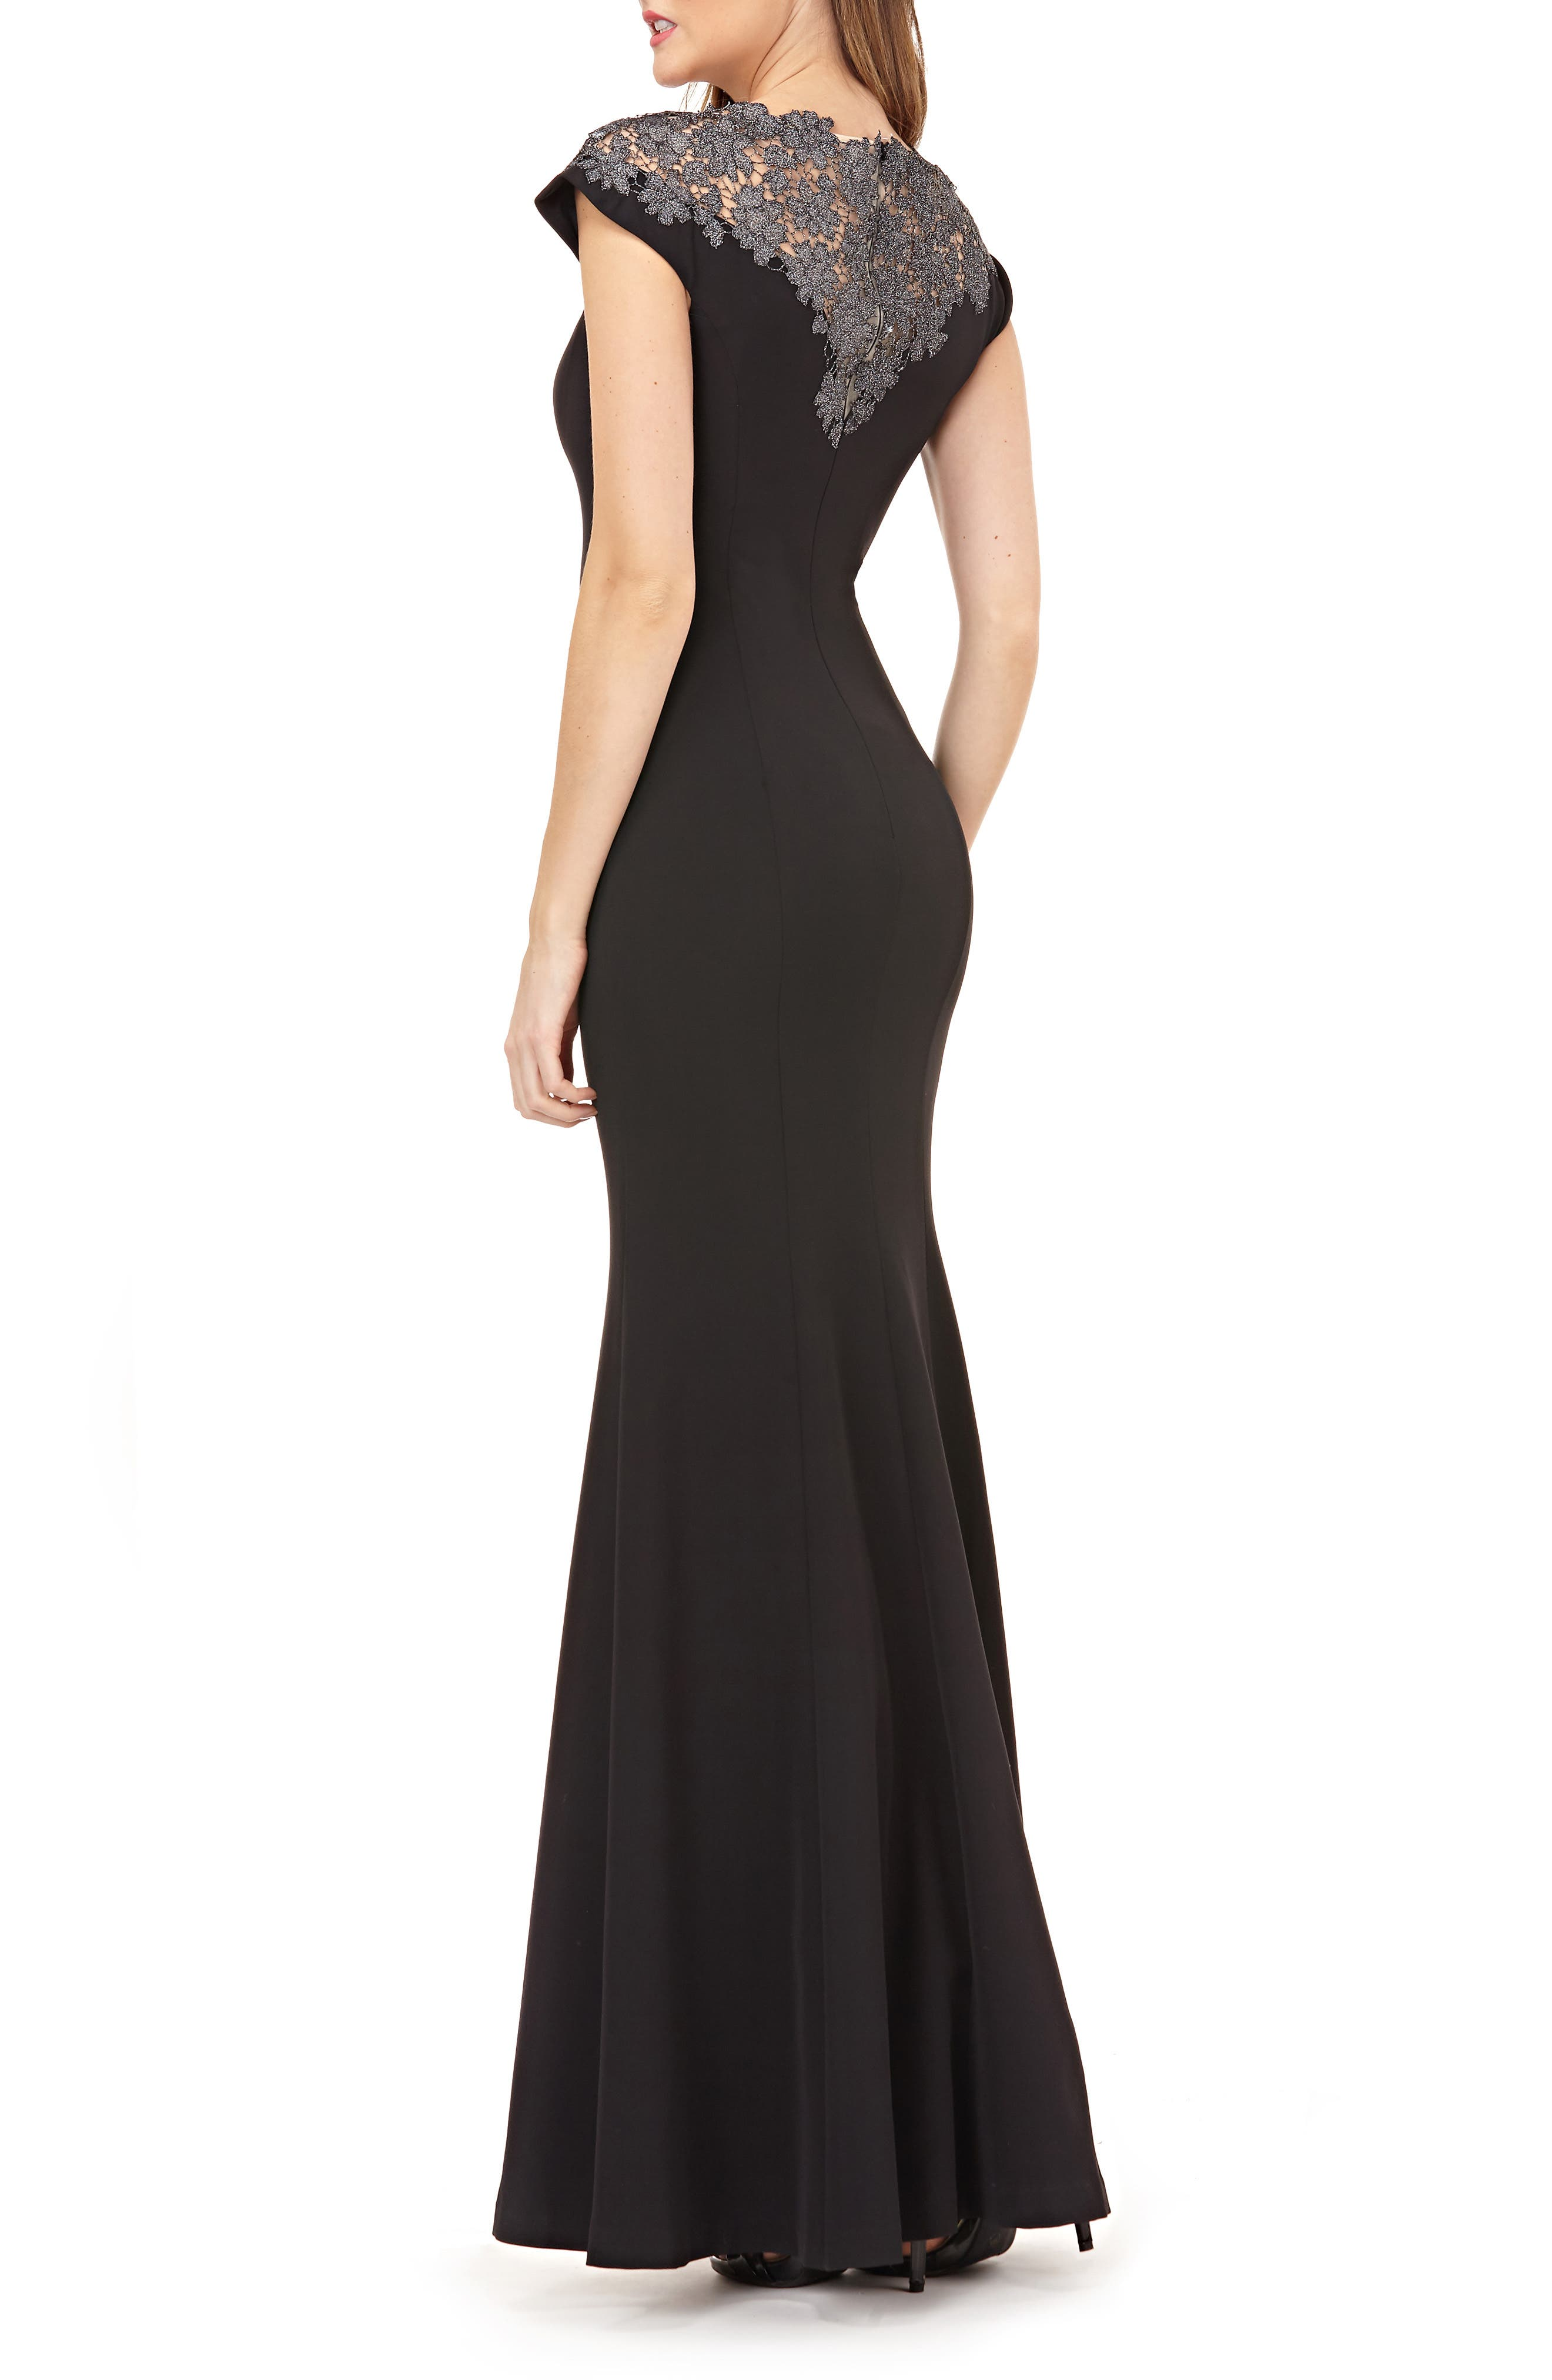 JS COLLECTIONS,                             Lace Yoke Crepe Trumpet Gown,                             Alternate thumbnail 2, color,                             BLACK